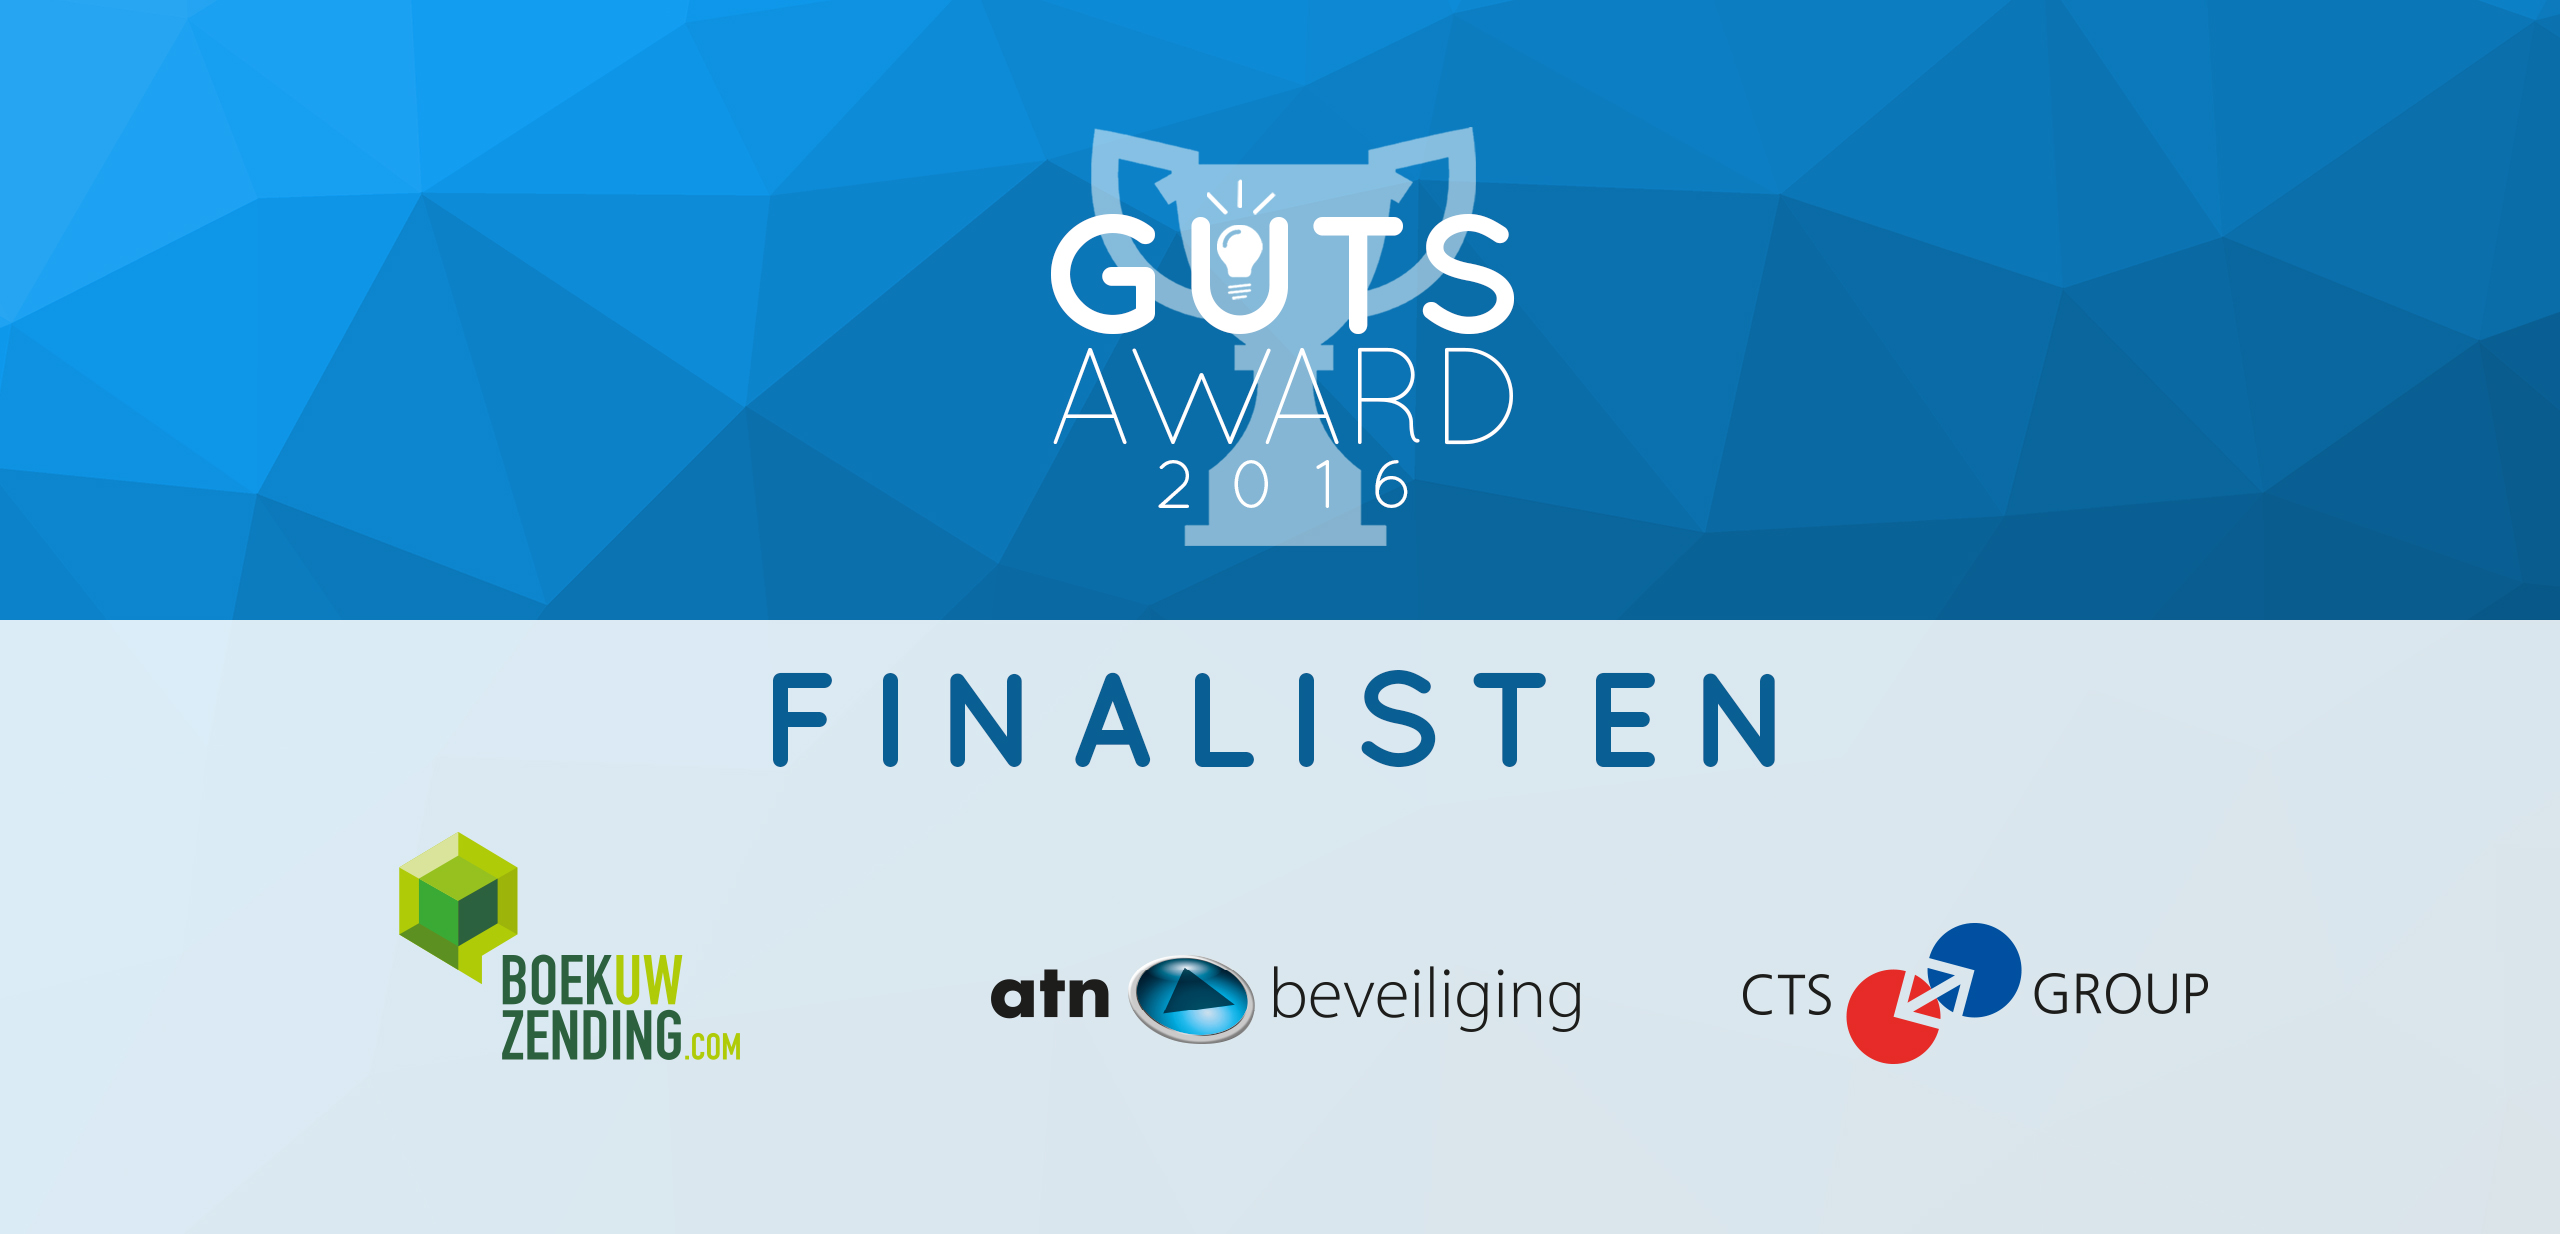 3 finalisten The Guts Award bekend